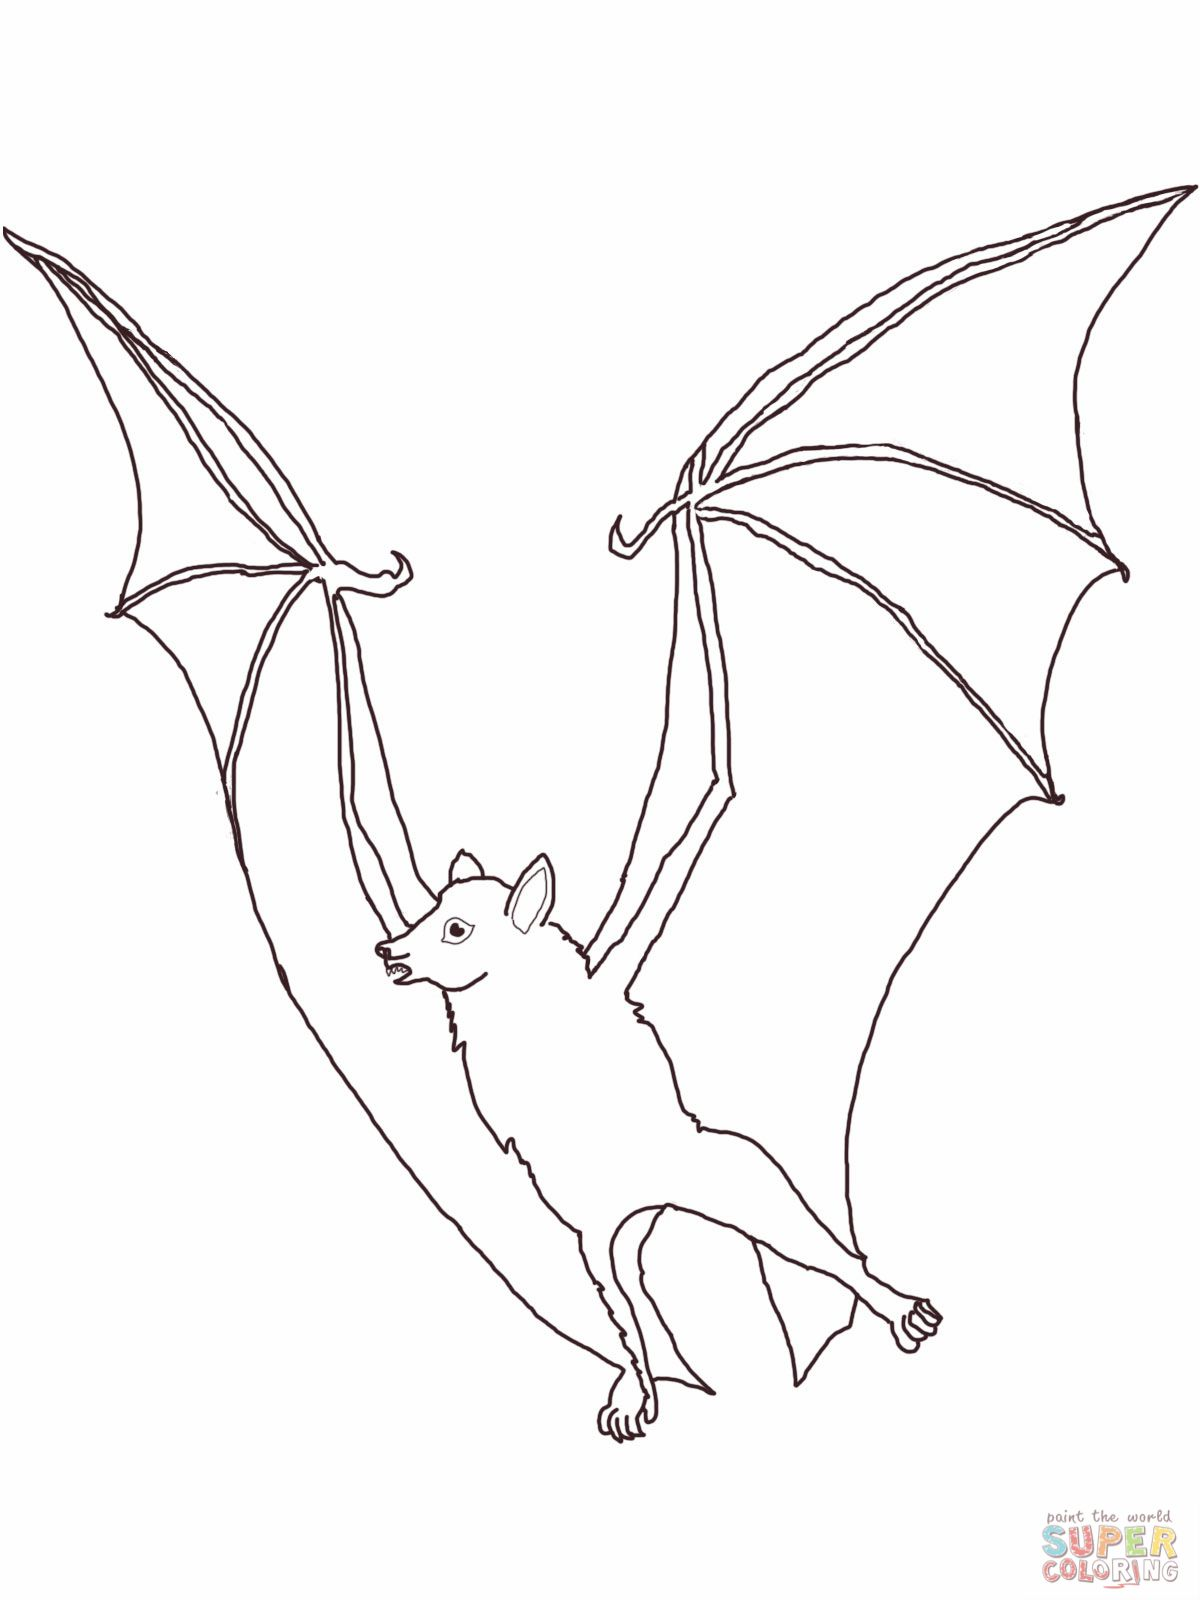 Fruit Bat coloring page | Fruit Bats | Pinterest | Bats